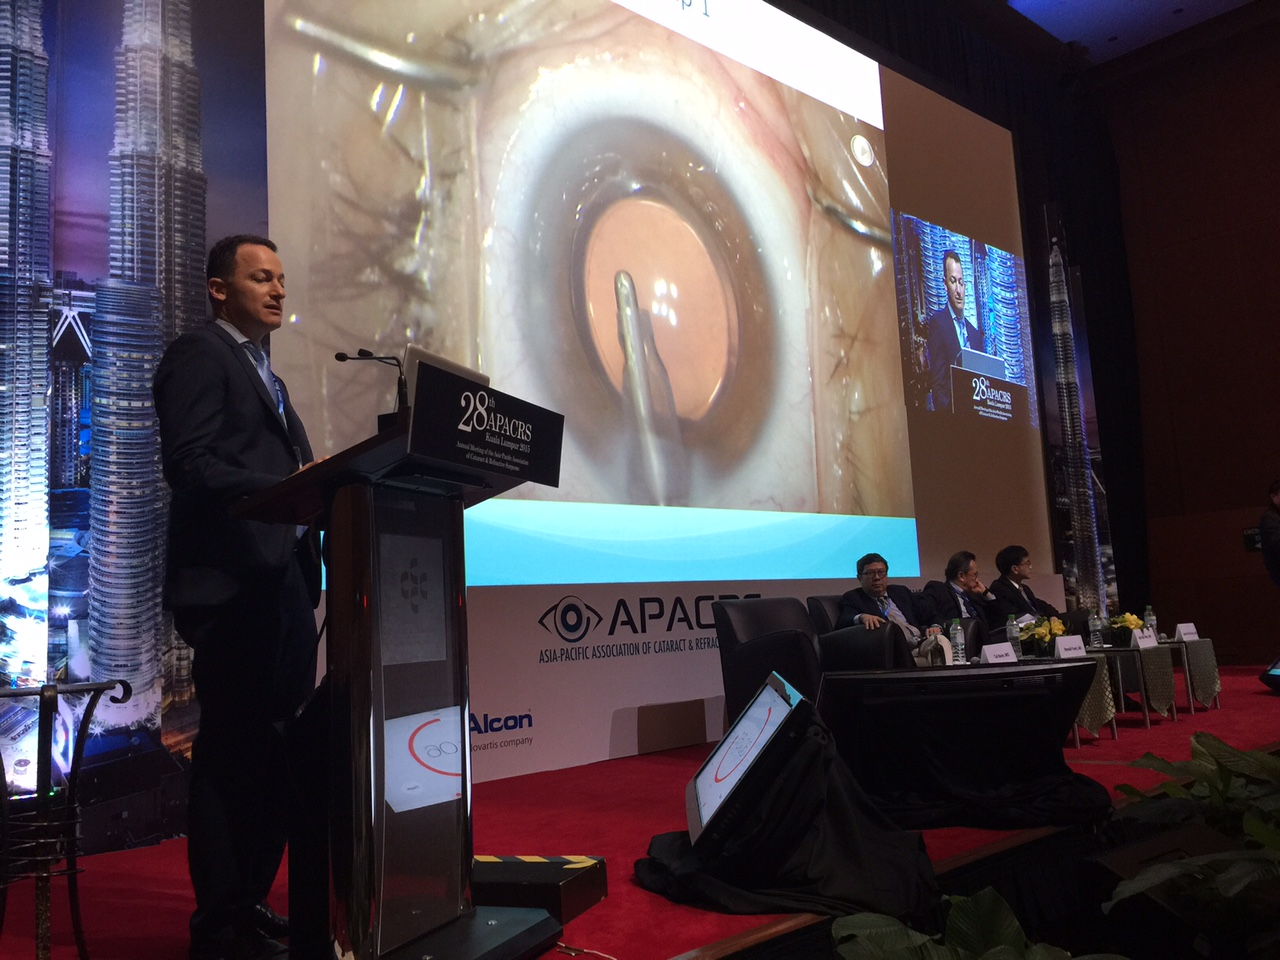 New York cataract surgeon Tal Raviv presenting in Kuala Lumpur on laser cataract surgery